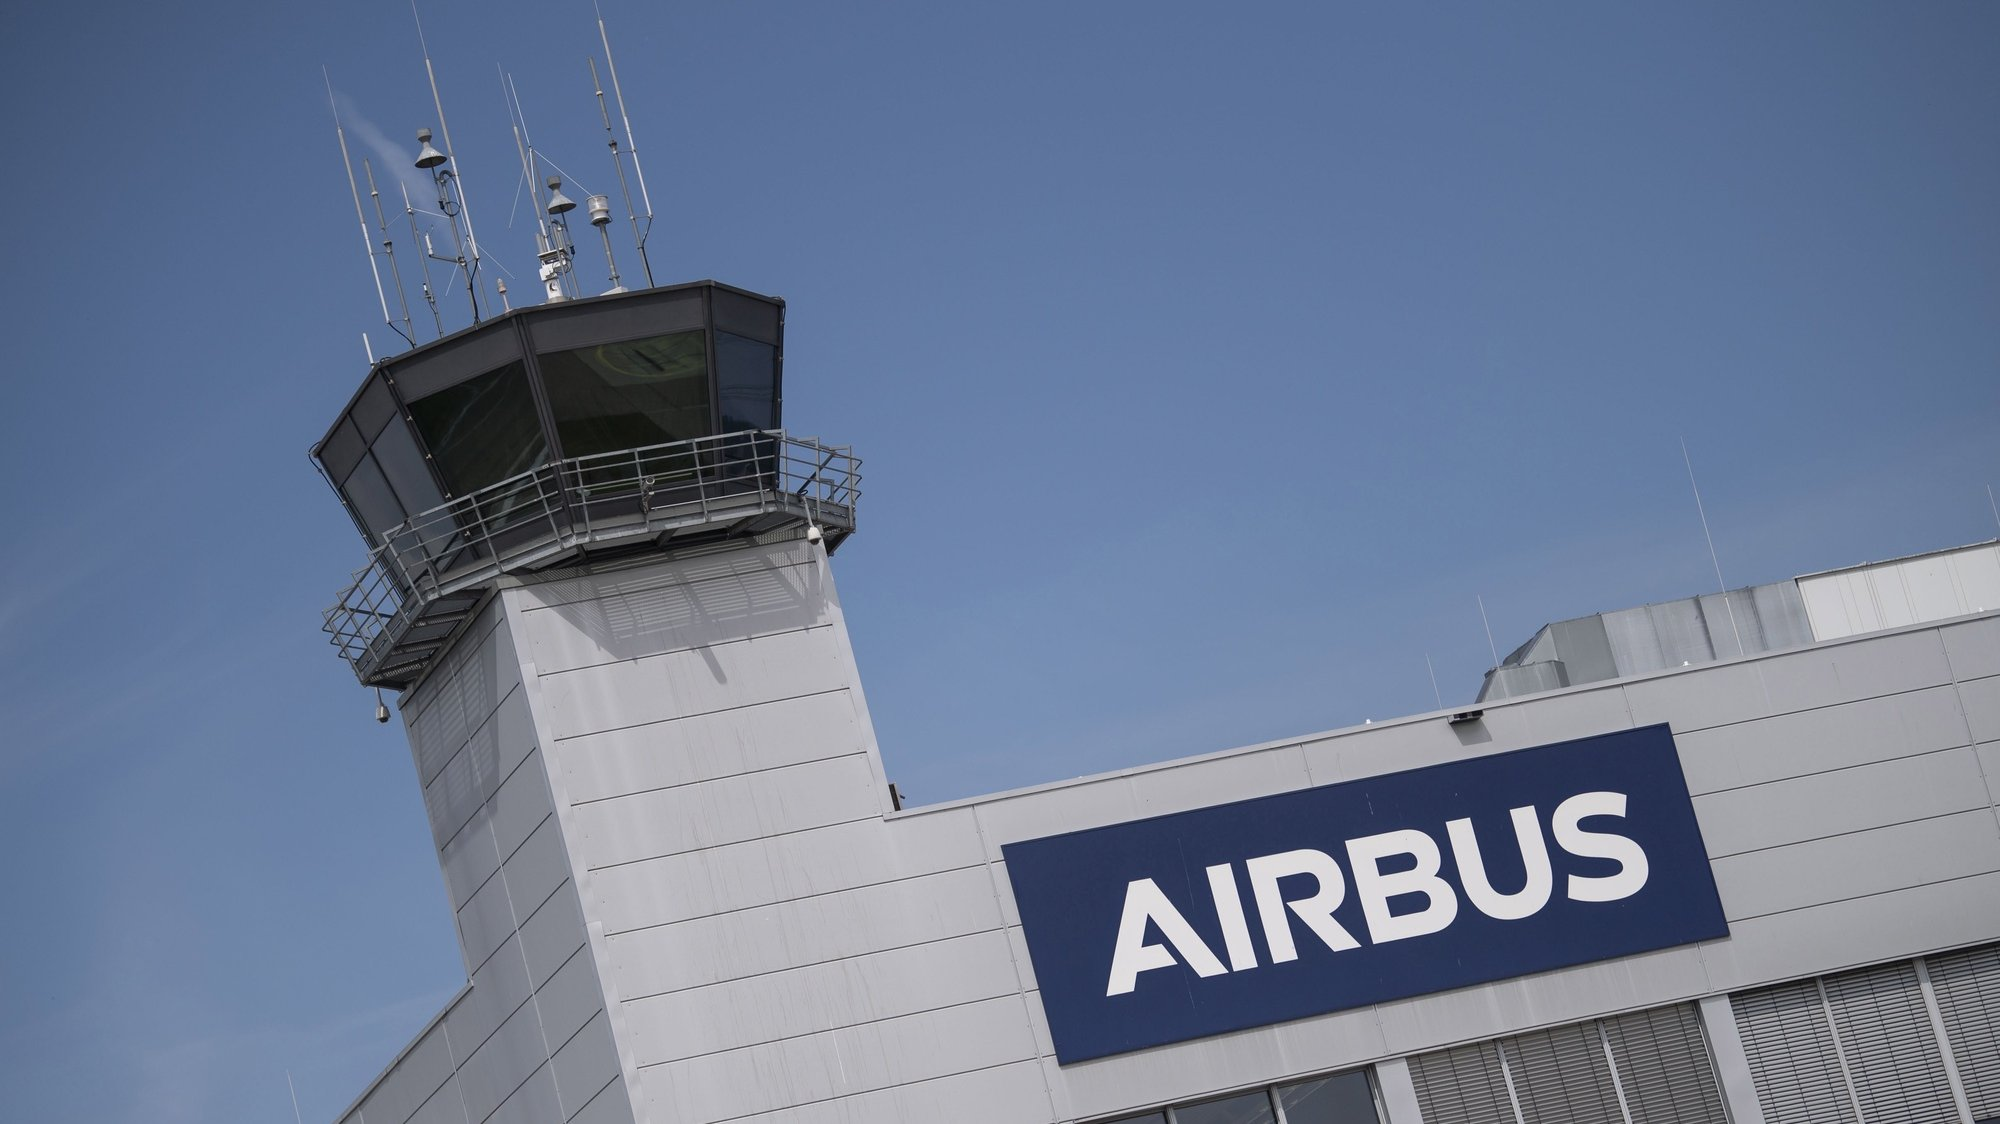 epa08574489 (FILE) - A Airbus logo at the apron of the German factory of Airbus Helicopters in Donauwoerth, Bavaria, Germany, 20 July 2020 (reissued 30 July 2020). Airbus on 30 July 2020 released their 2nd quarter 2020 results saying they suffered a 55 per cent drop in consolidated revenues for the 2nd quarter of 2020, with 8,317 million euro revenues in 2020 when compared with 2019 2nd quarter results of 18,317 million euro. Net profit for same period was in minus 1,438 million euro when compared with 1,157 million profit in 2019.  EPA/LUKAS BARTH-TUTTAS